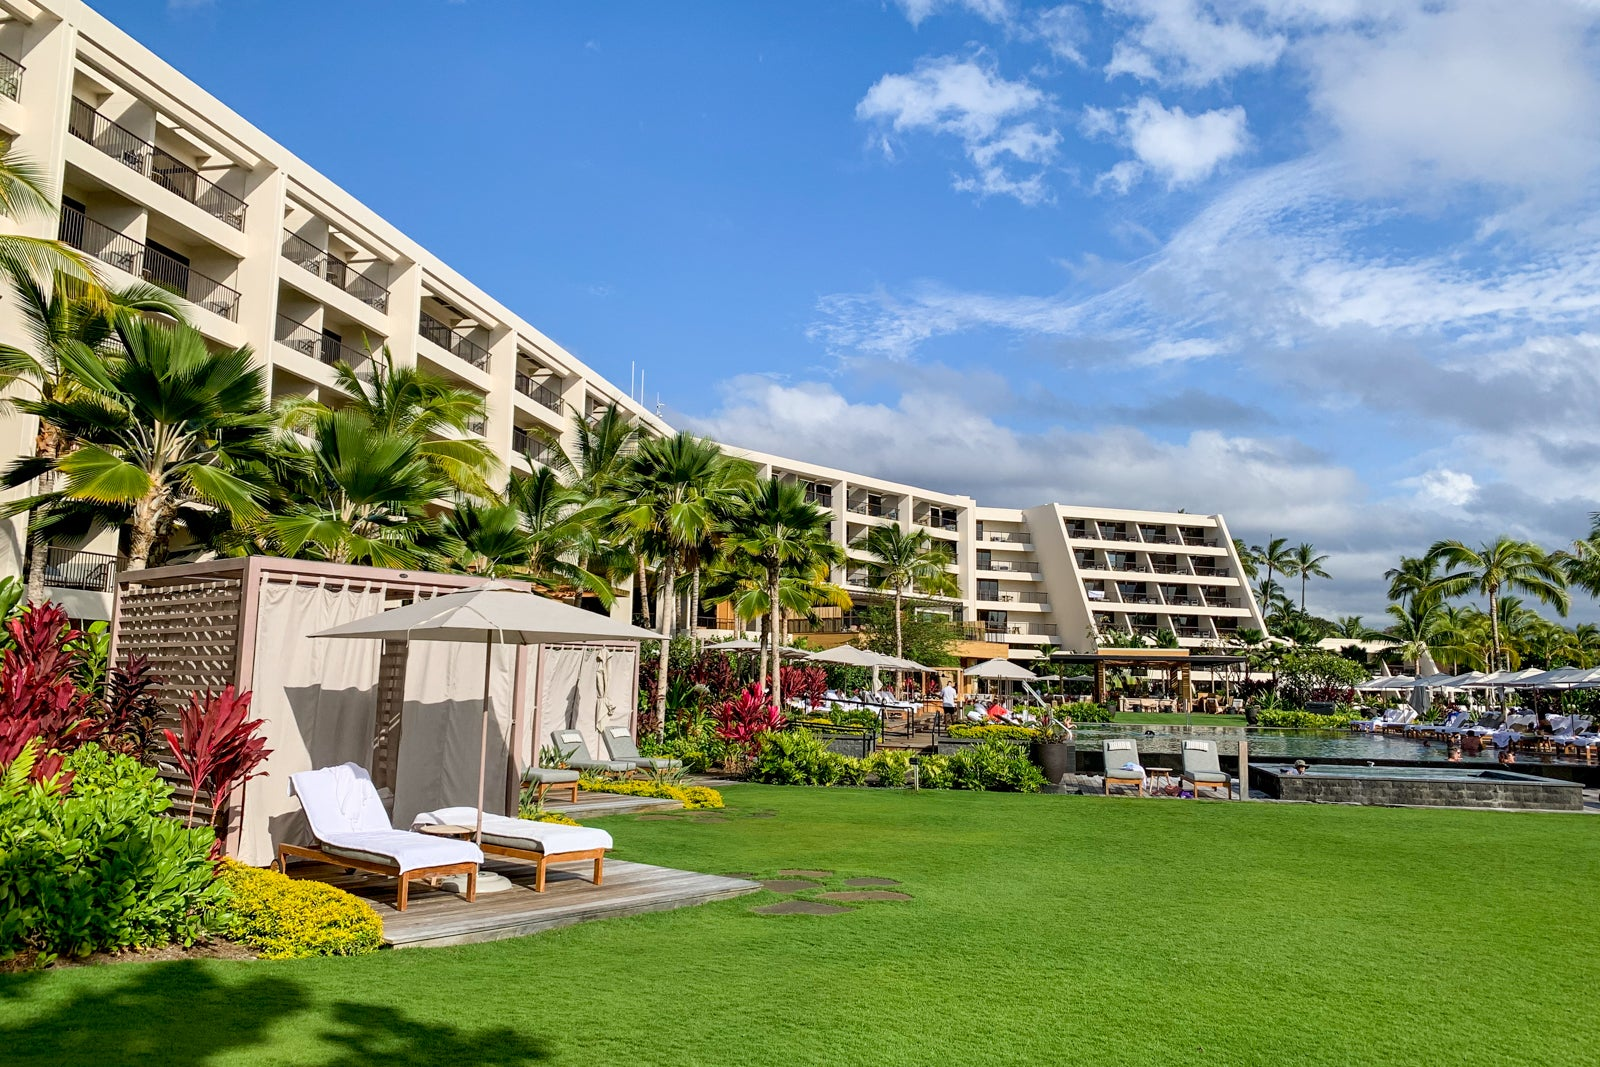 7 things I loved about the reopened Mauna Lani in Hawaii - The Points Guy